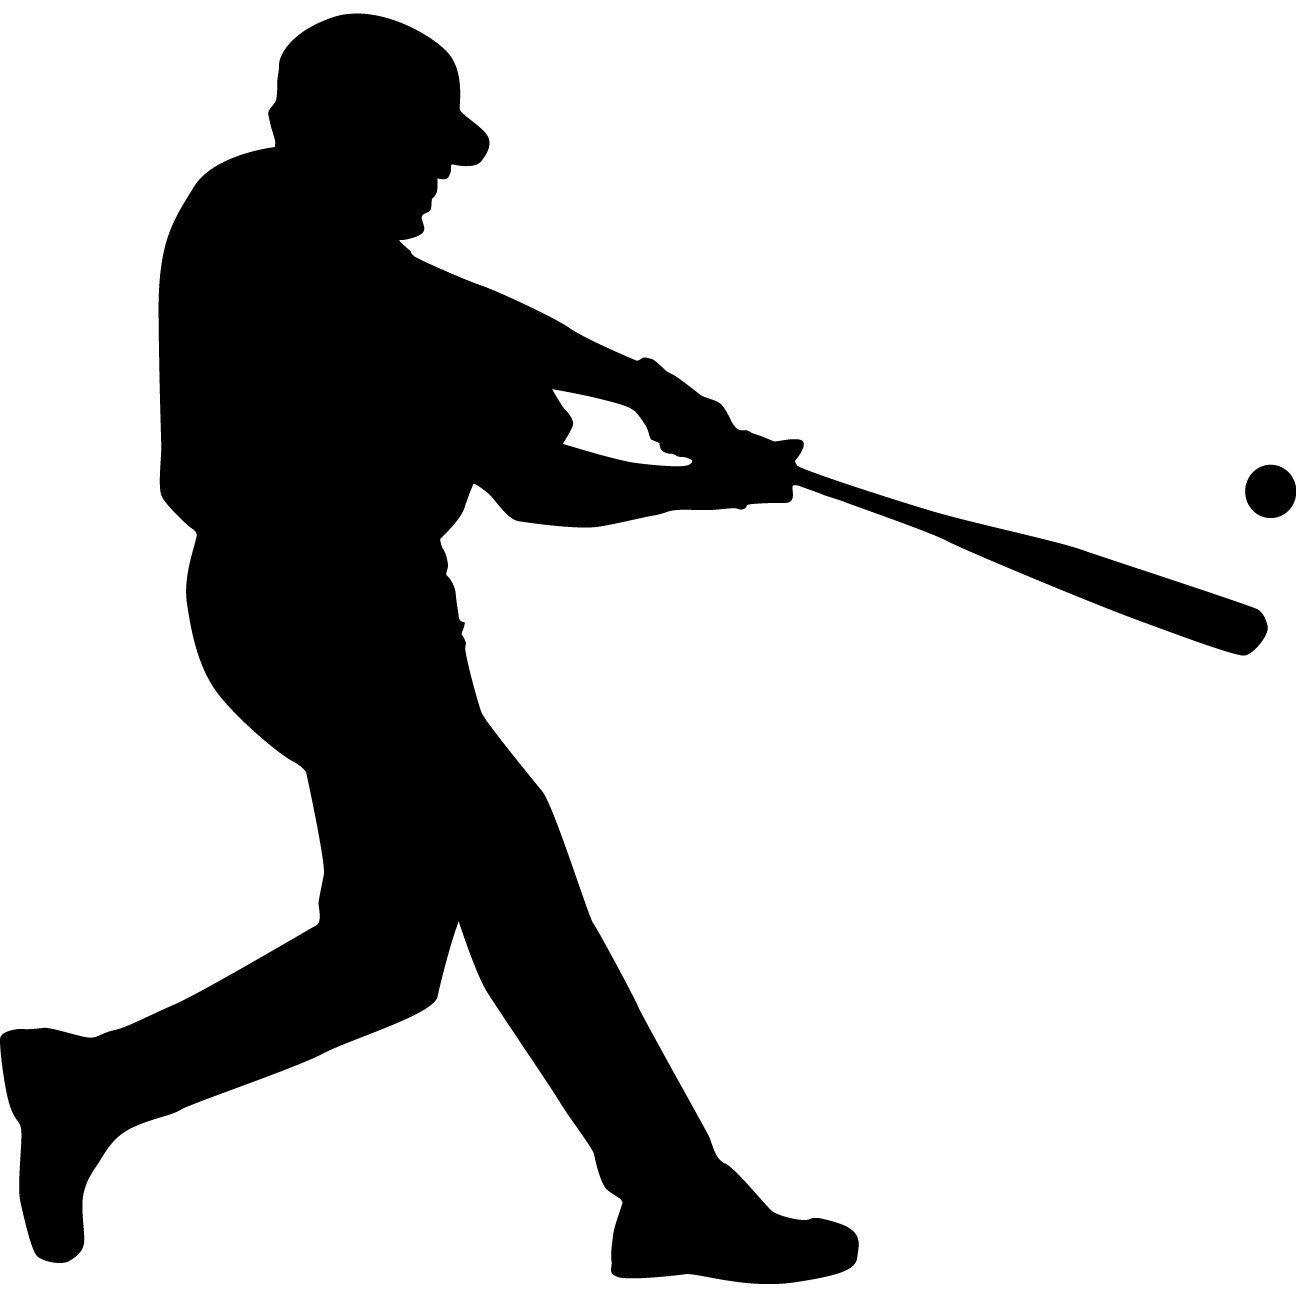 free clipart baseball player silhouette - photo #2